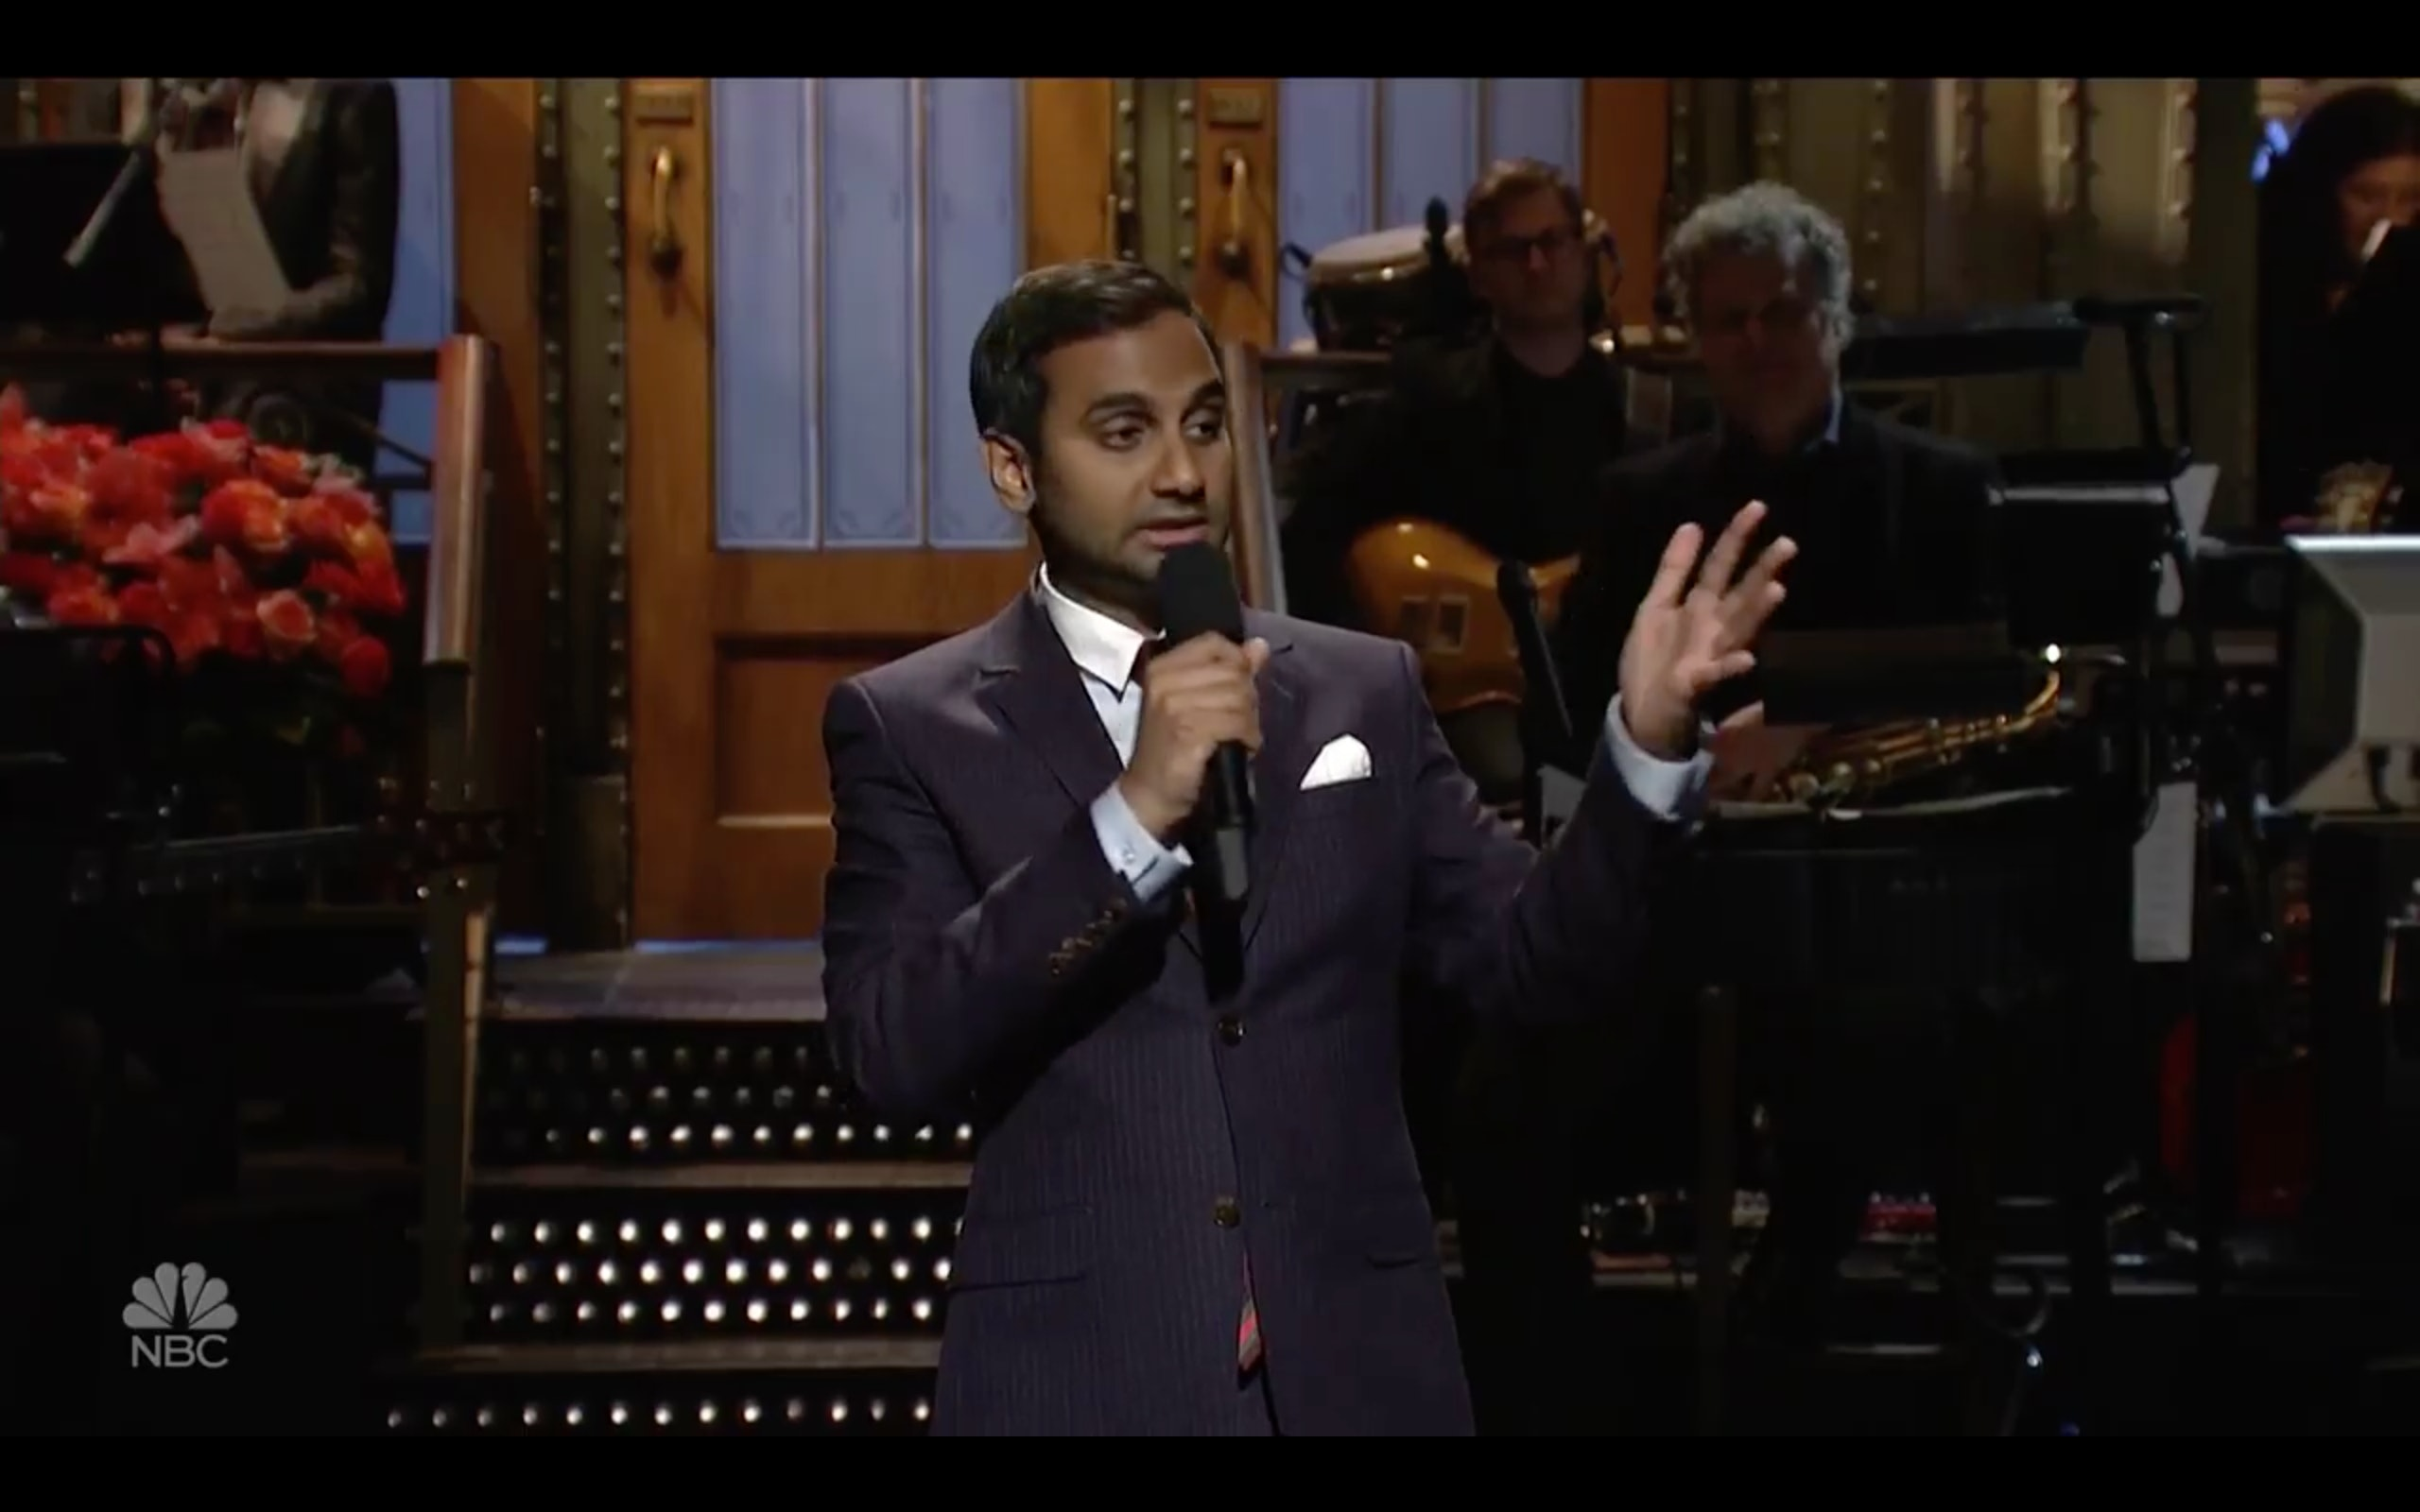 Aziz Ansari Delivers SNL Monologue Telling Trump to Denounce Racists